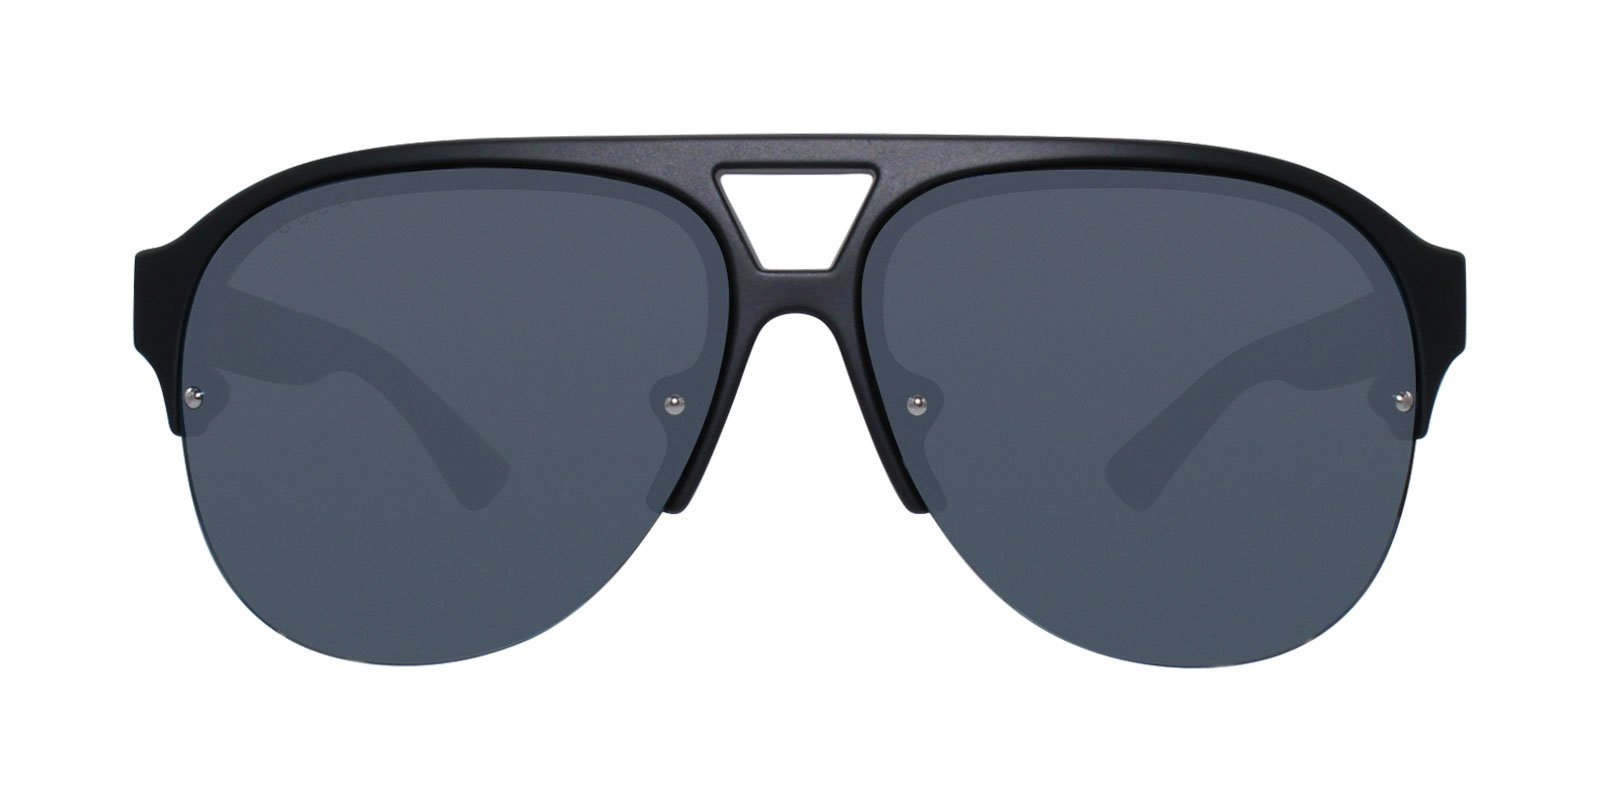 37241cea313d Gucci GG0170S Black / Blue Lens Mirror Sunglasses | Products ...